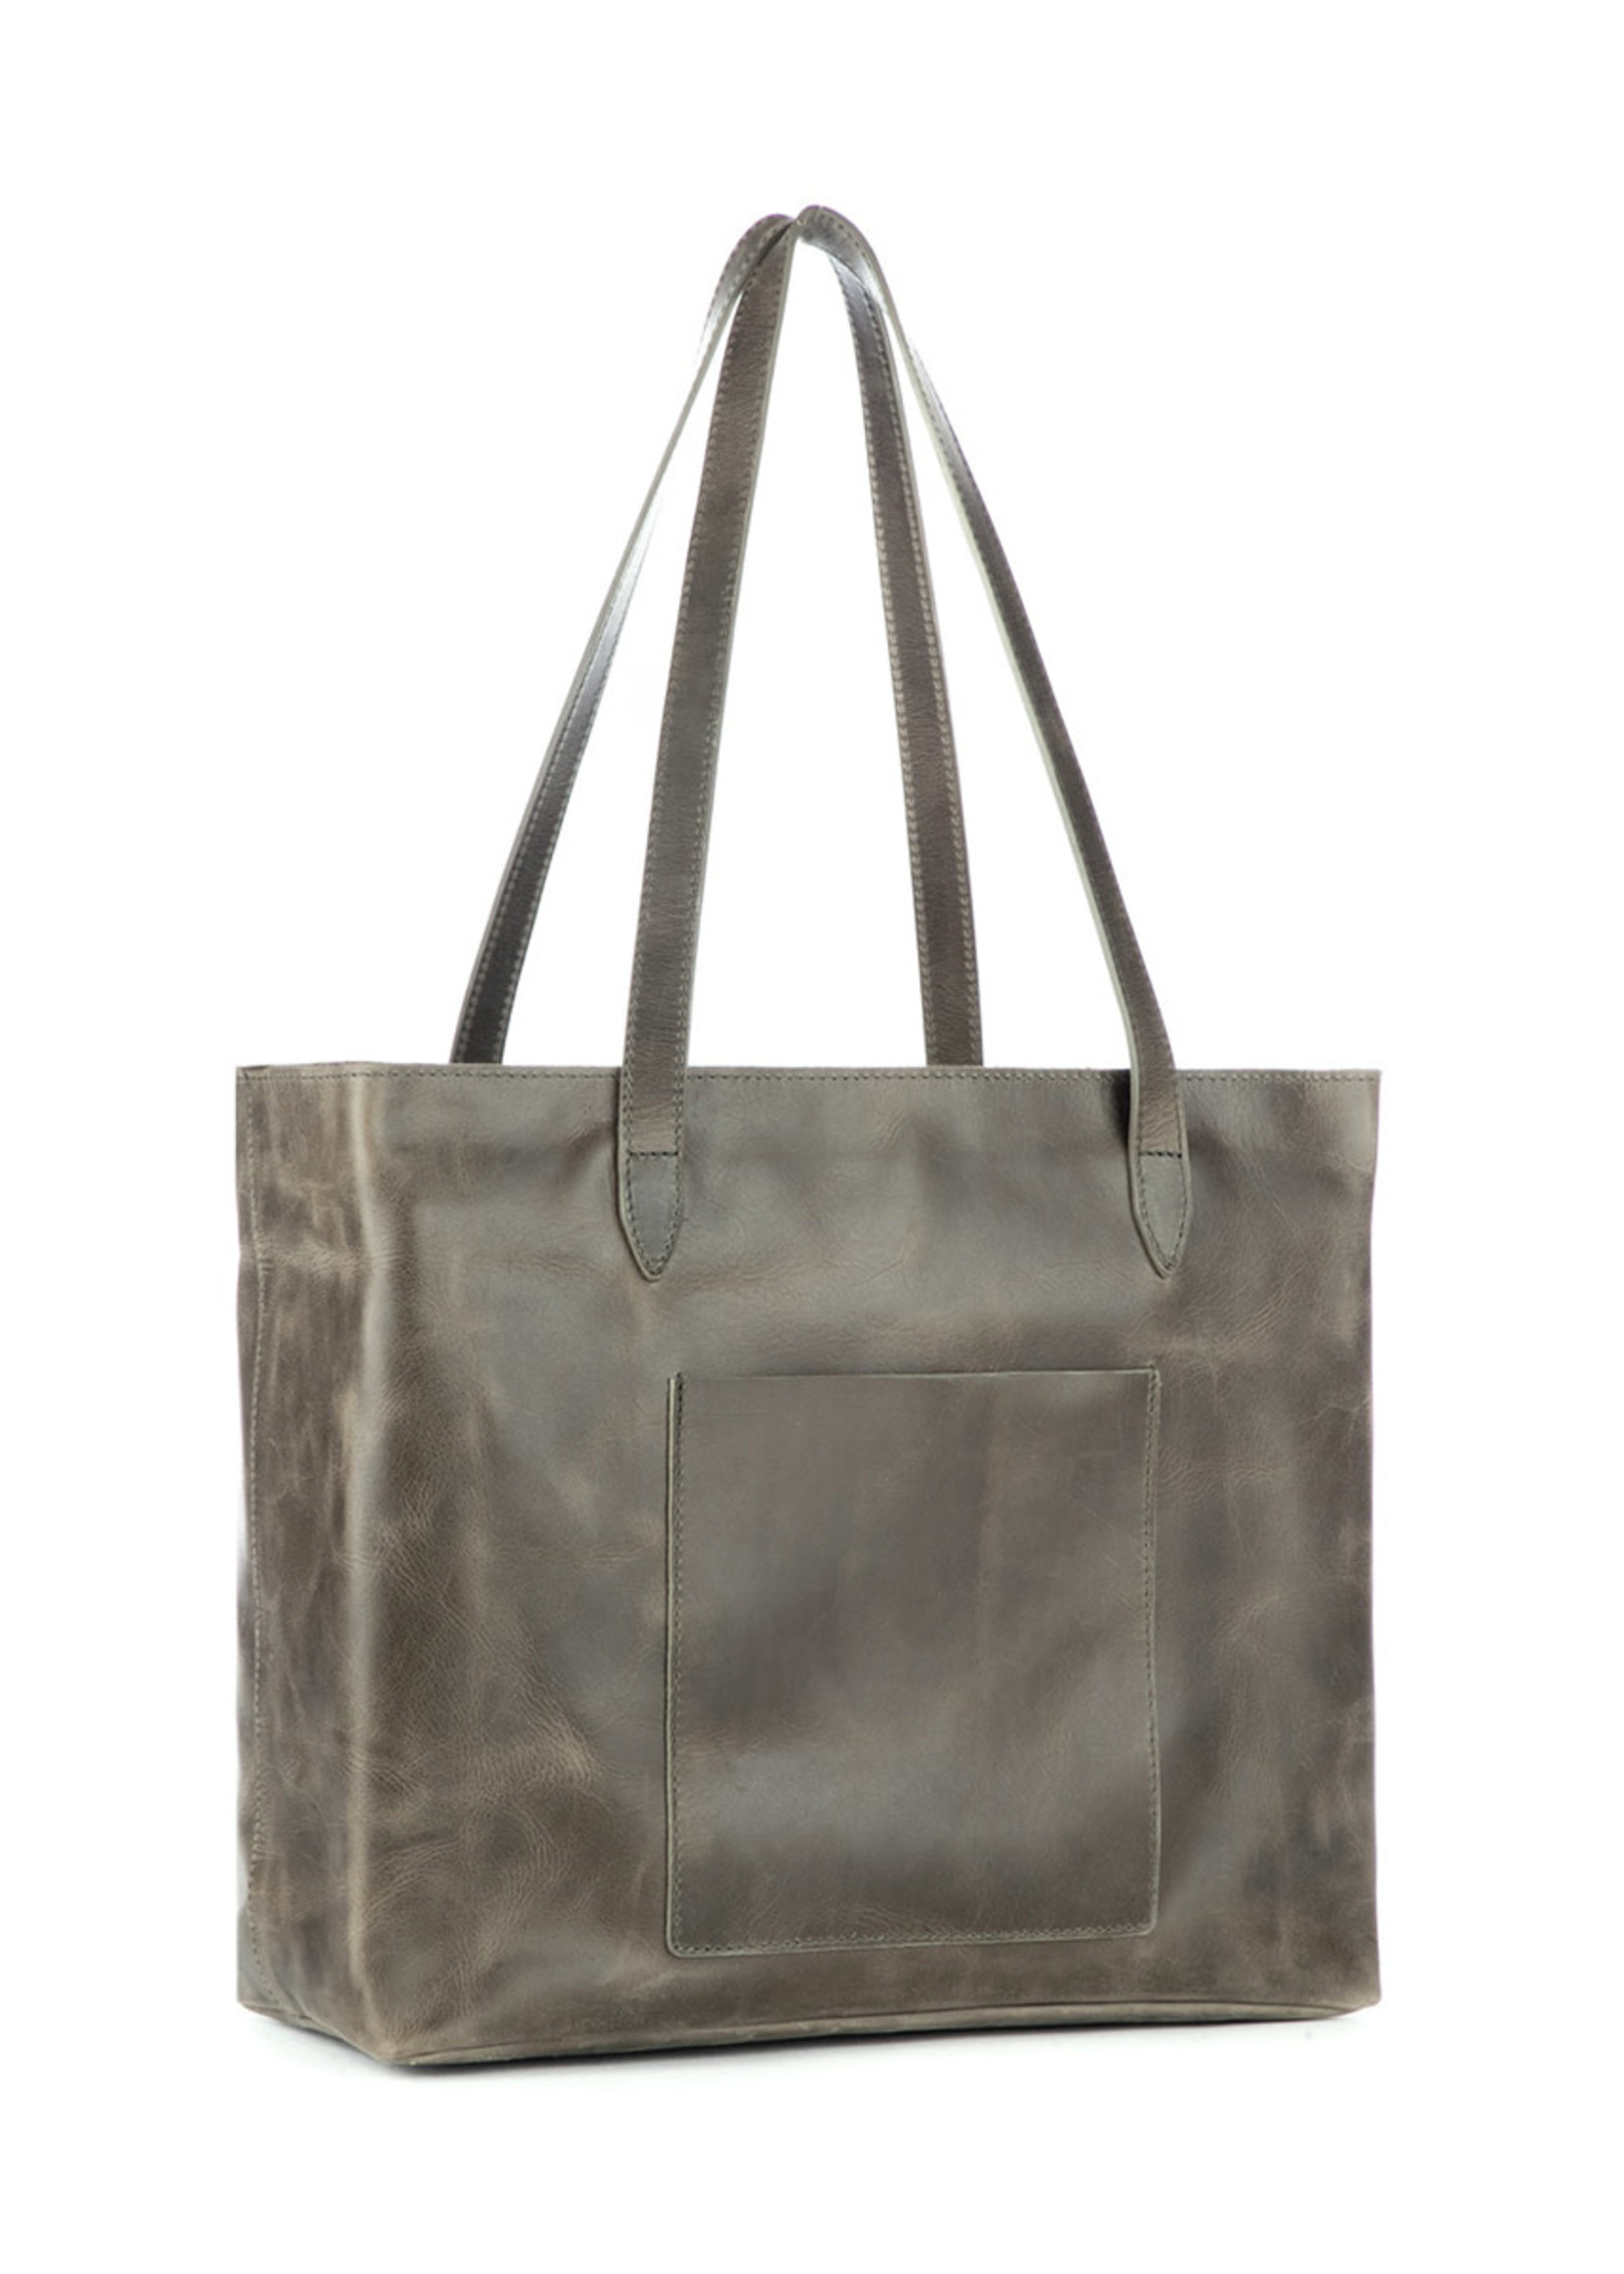 BRAVE LEATHER HUDSON TOTE